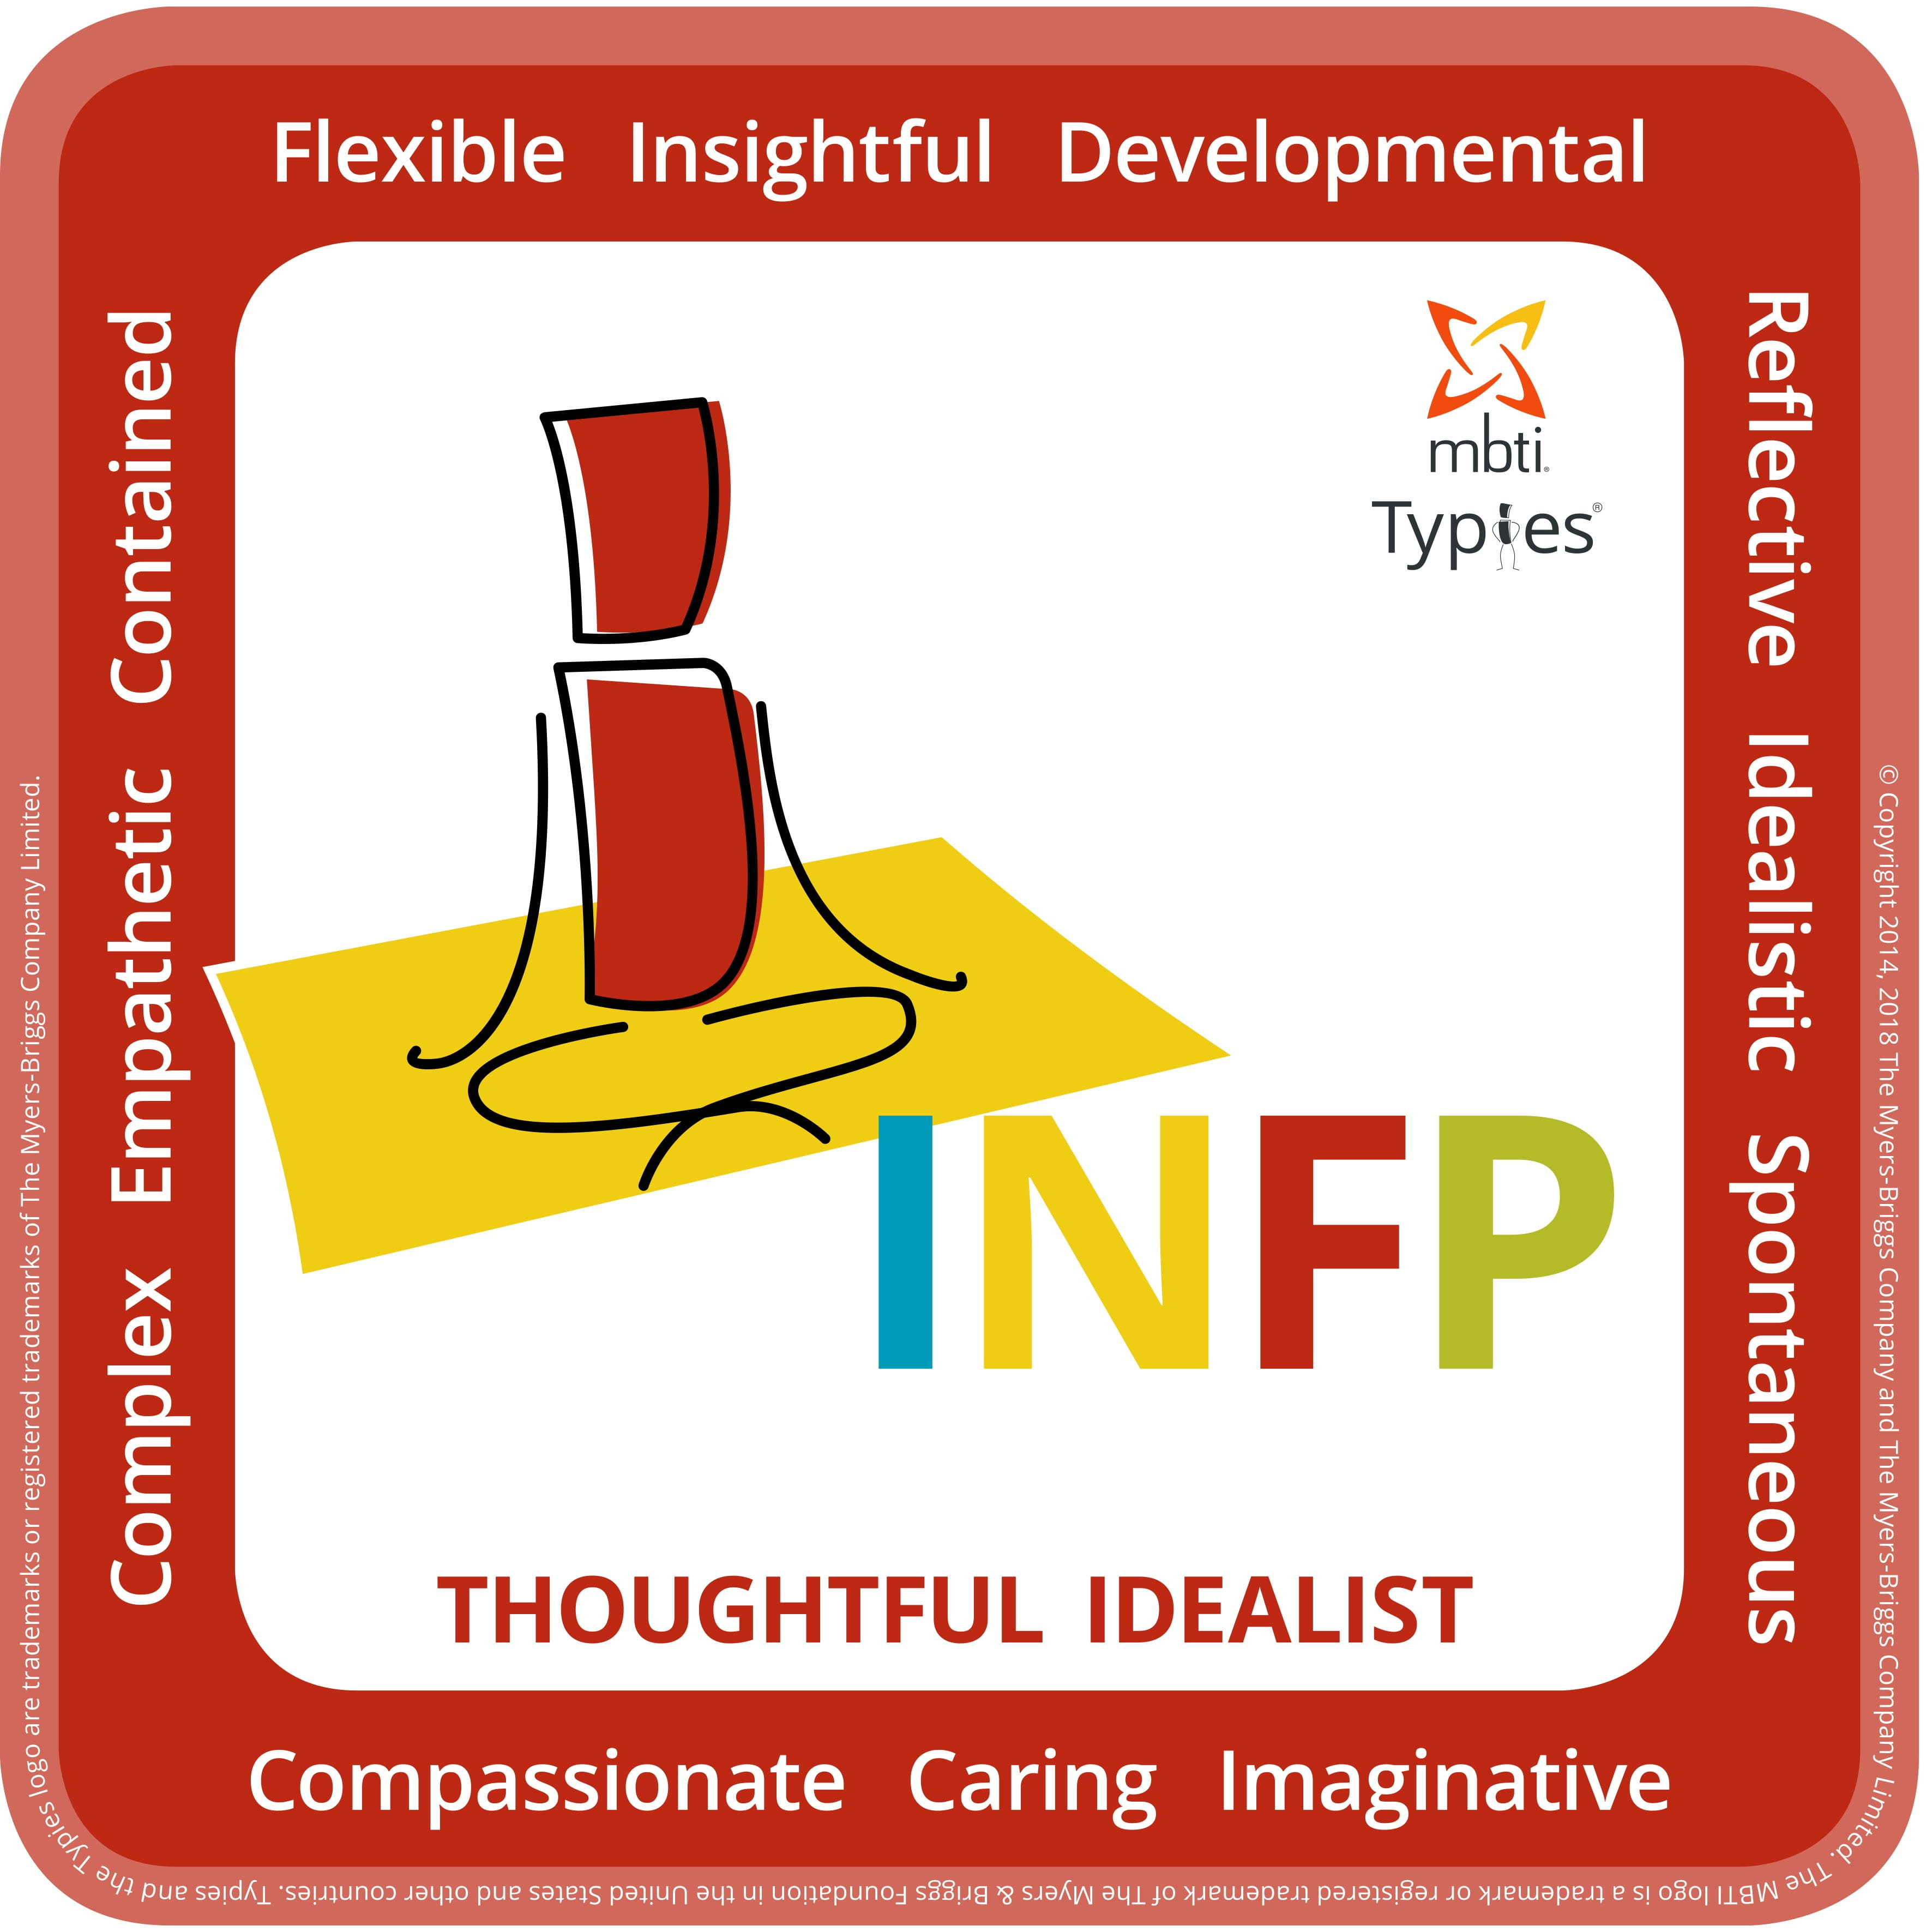 Typical characteristics of an INFP